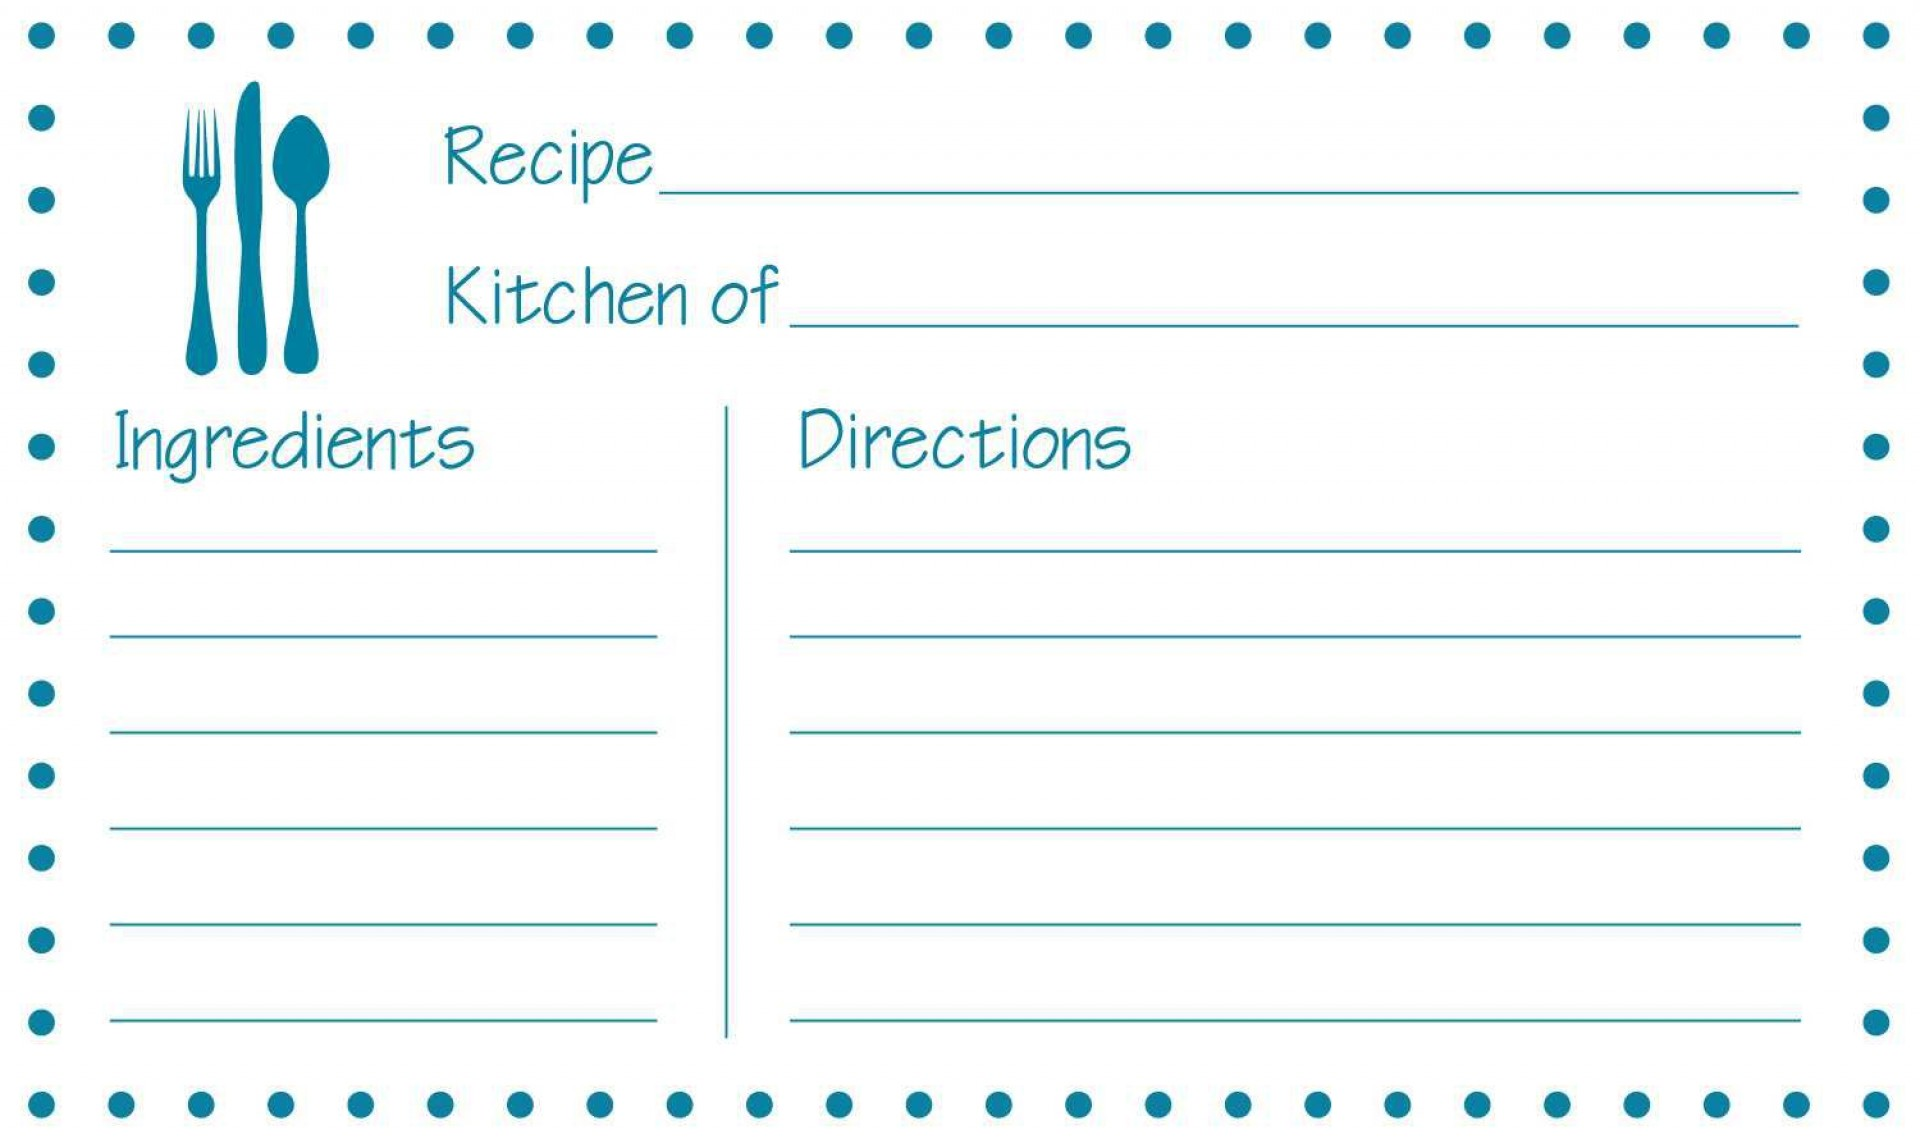 002 Stupendou Editable Recipe Card Template Highest Quality  Free For Microsoft Word 4x6 Page1920